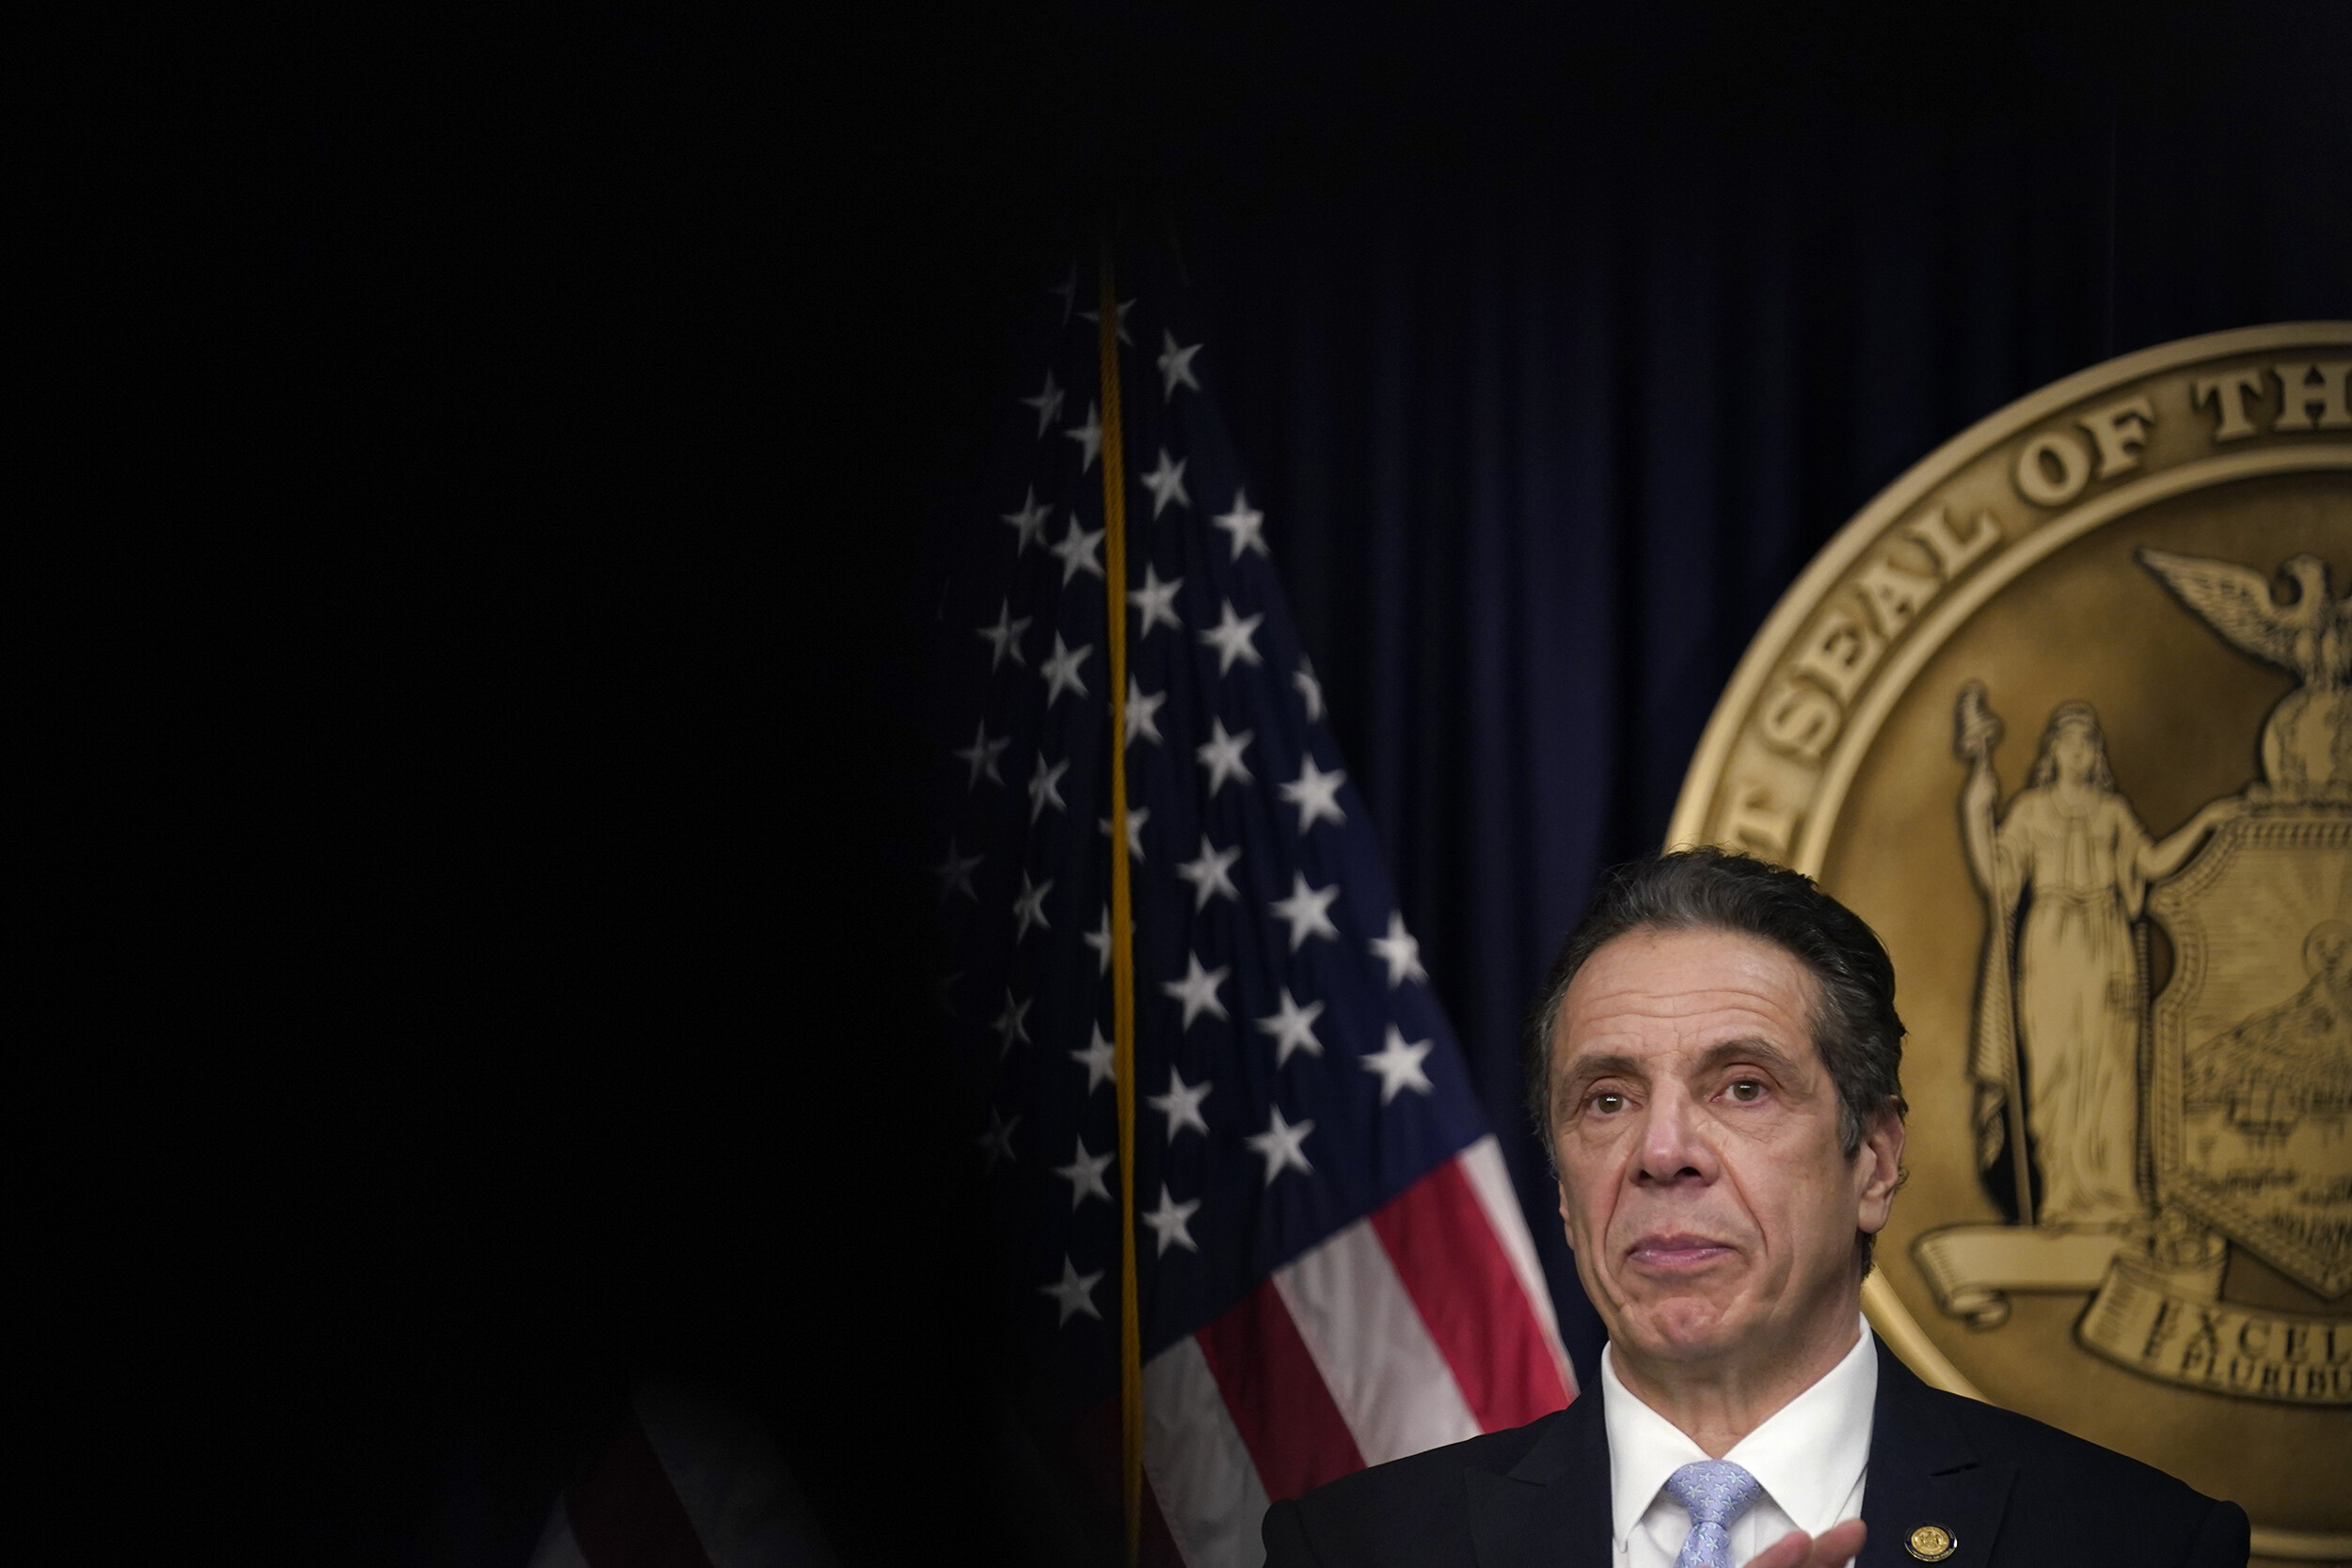 <i>Seth WenigPool/Getty Images/</i><br/>New York Gov. Andrew Cuomo speaks during an event at his office on March 18